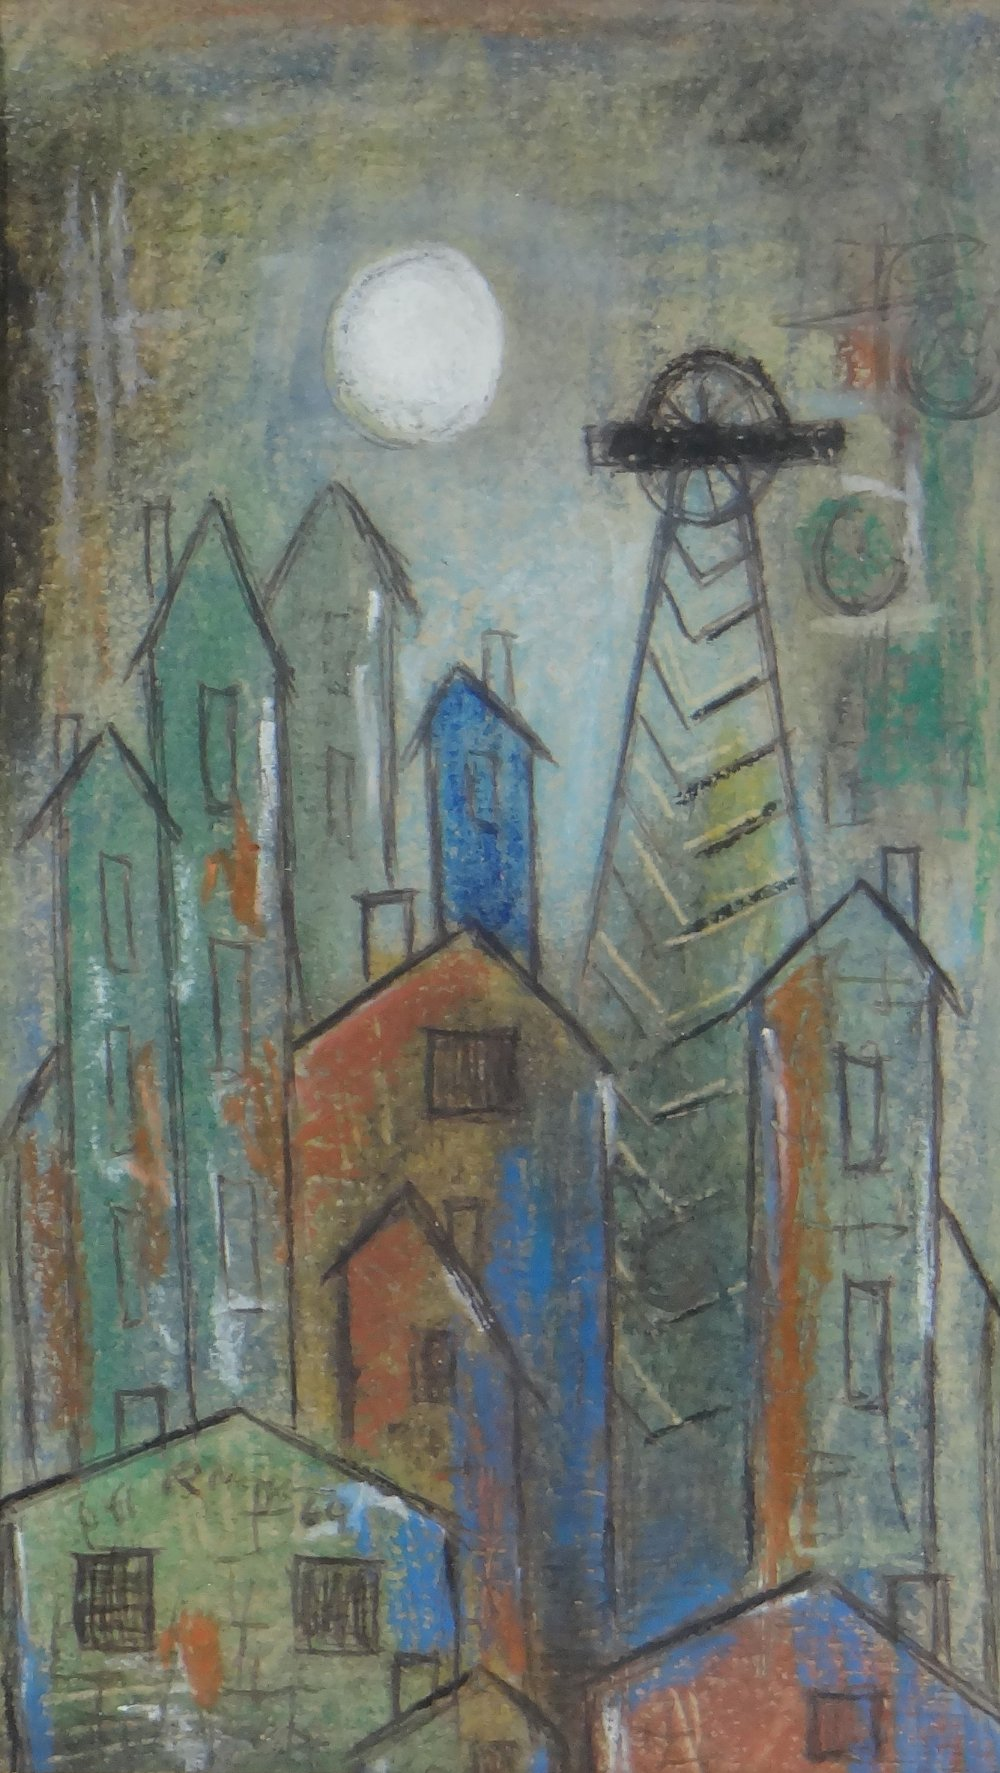 ROBERT MORGAN wax crayon drawing - entitled 'Pit Buildings No.1', signed and dated 1960, with